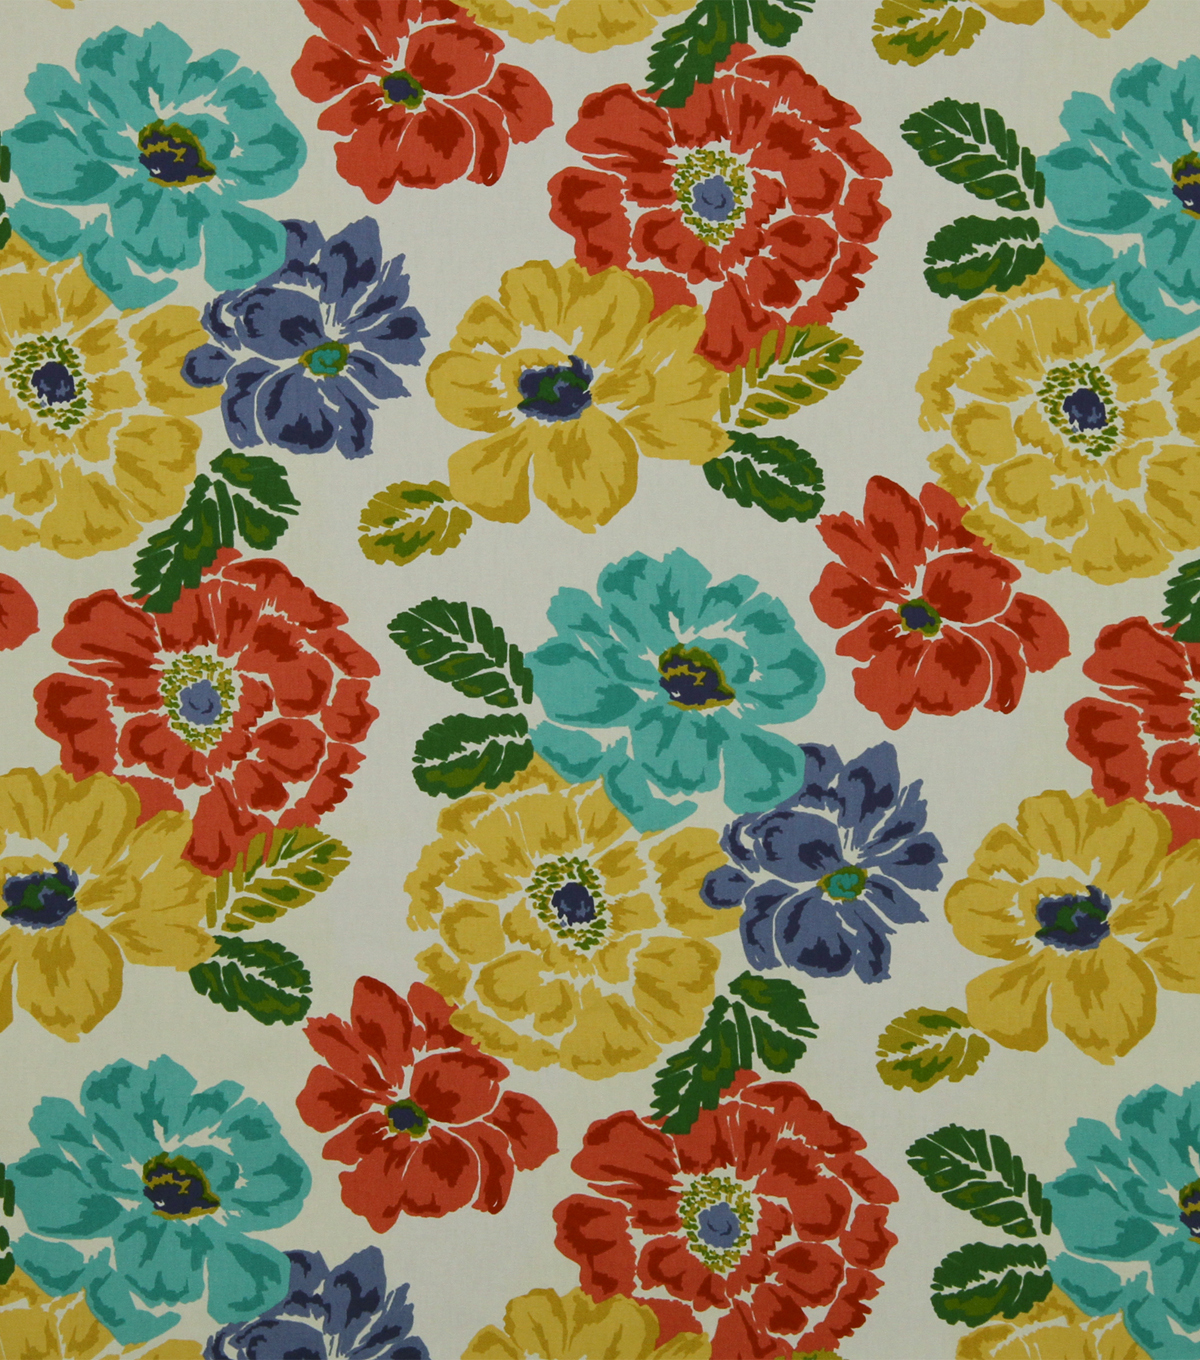 Home Decor 8\u0022x8\u0022 Fabric Swatch-Robert Allen Brushed Floral Calypso